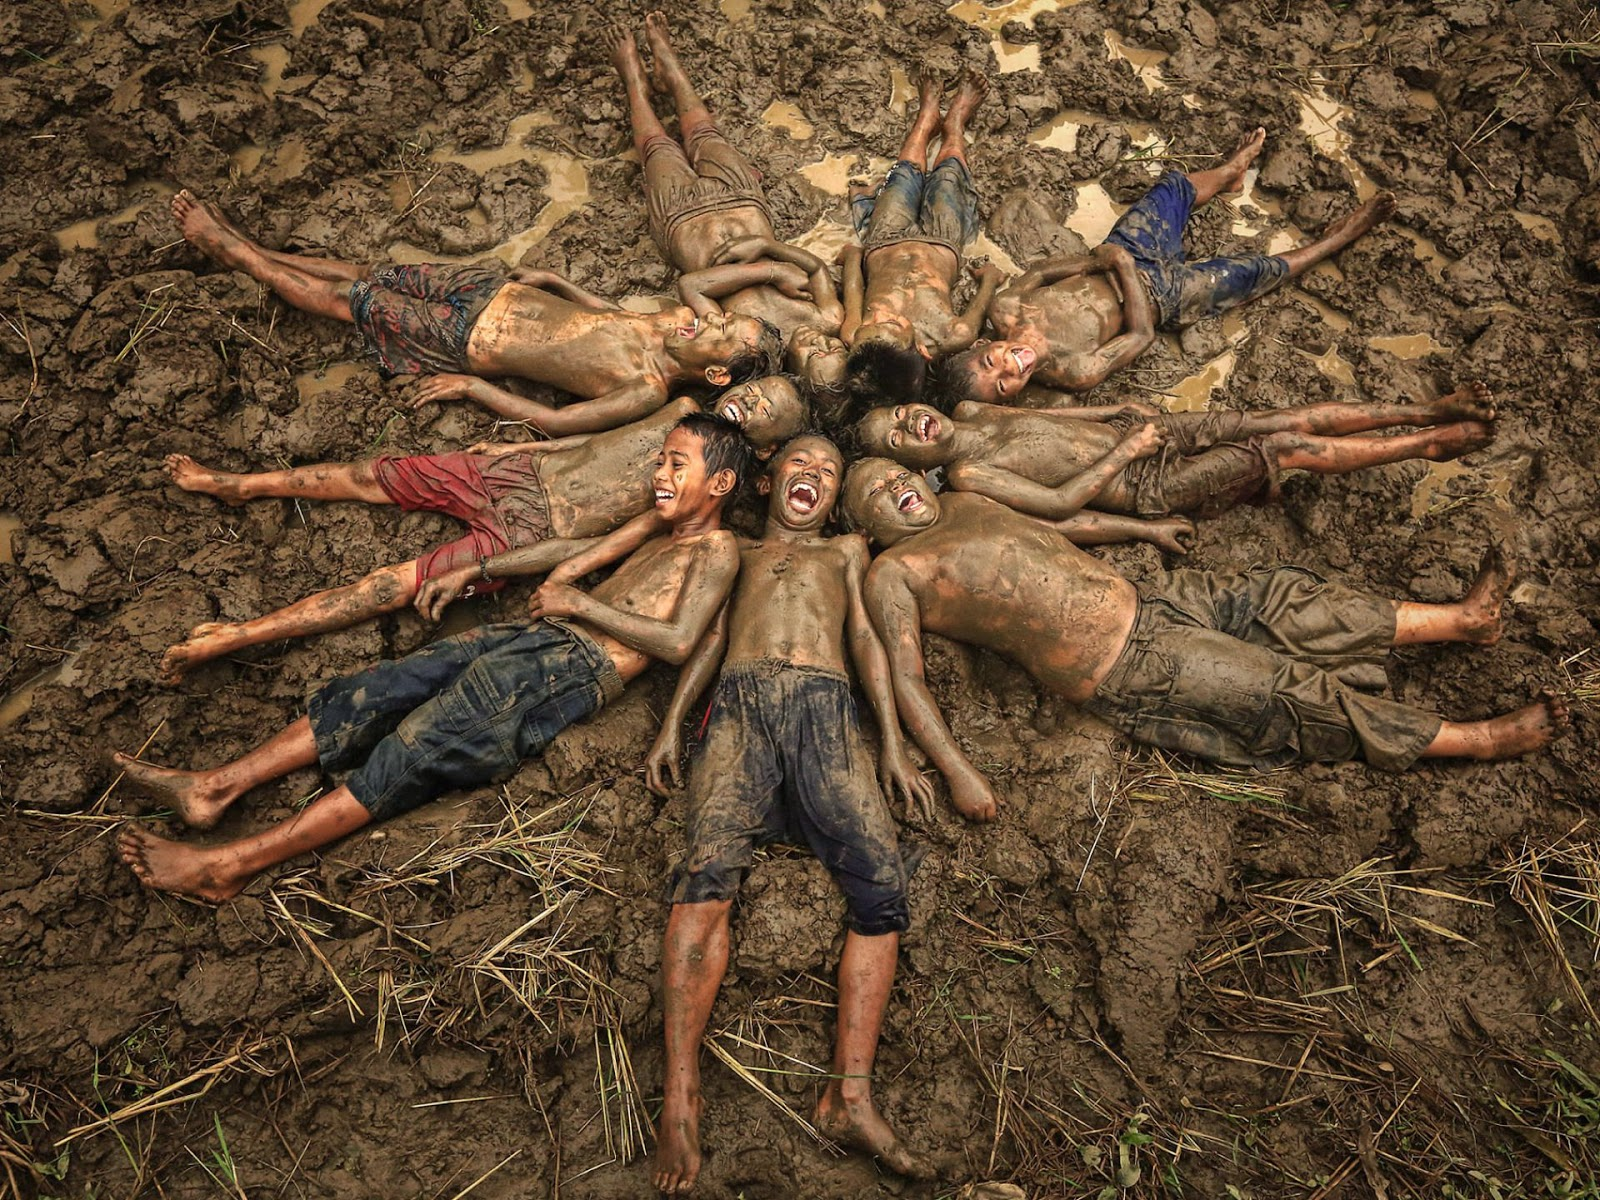 Children play in the mud after a football game in Indonesia